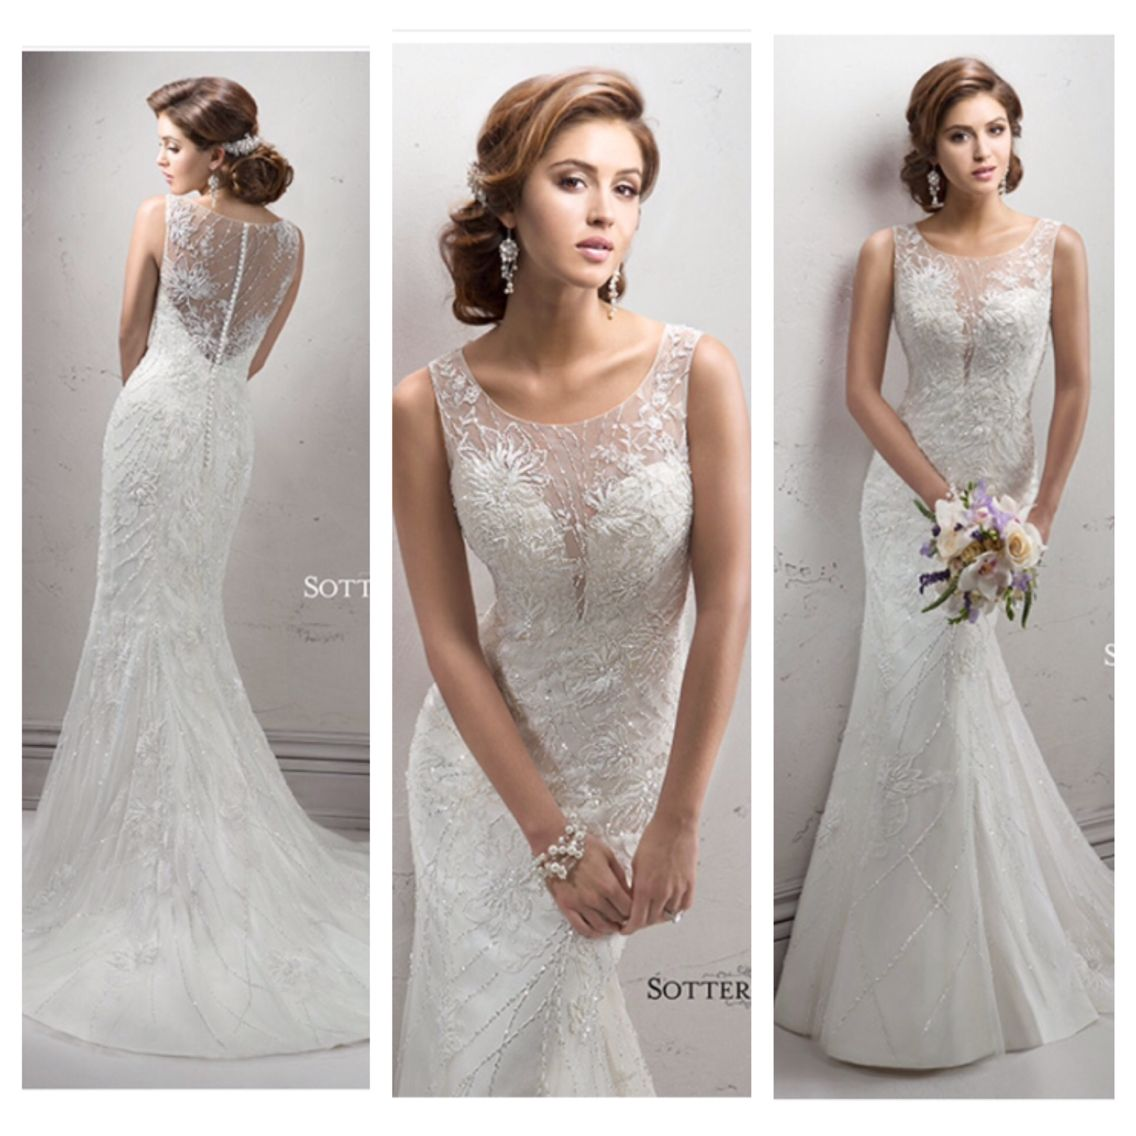 Slim fit wedding dresses  Shanene by Sottero and Midgley  Maggie Sottero Favourites